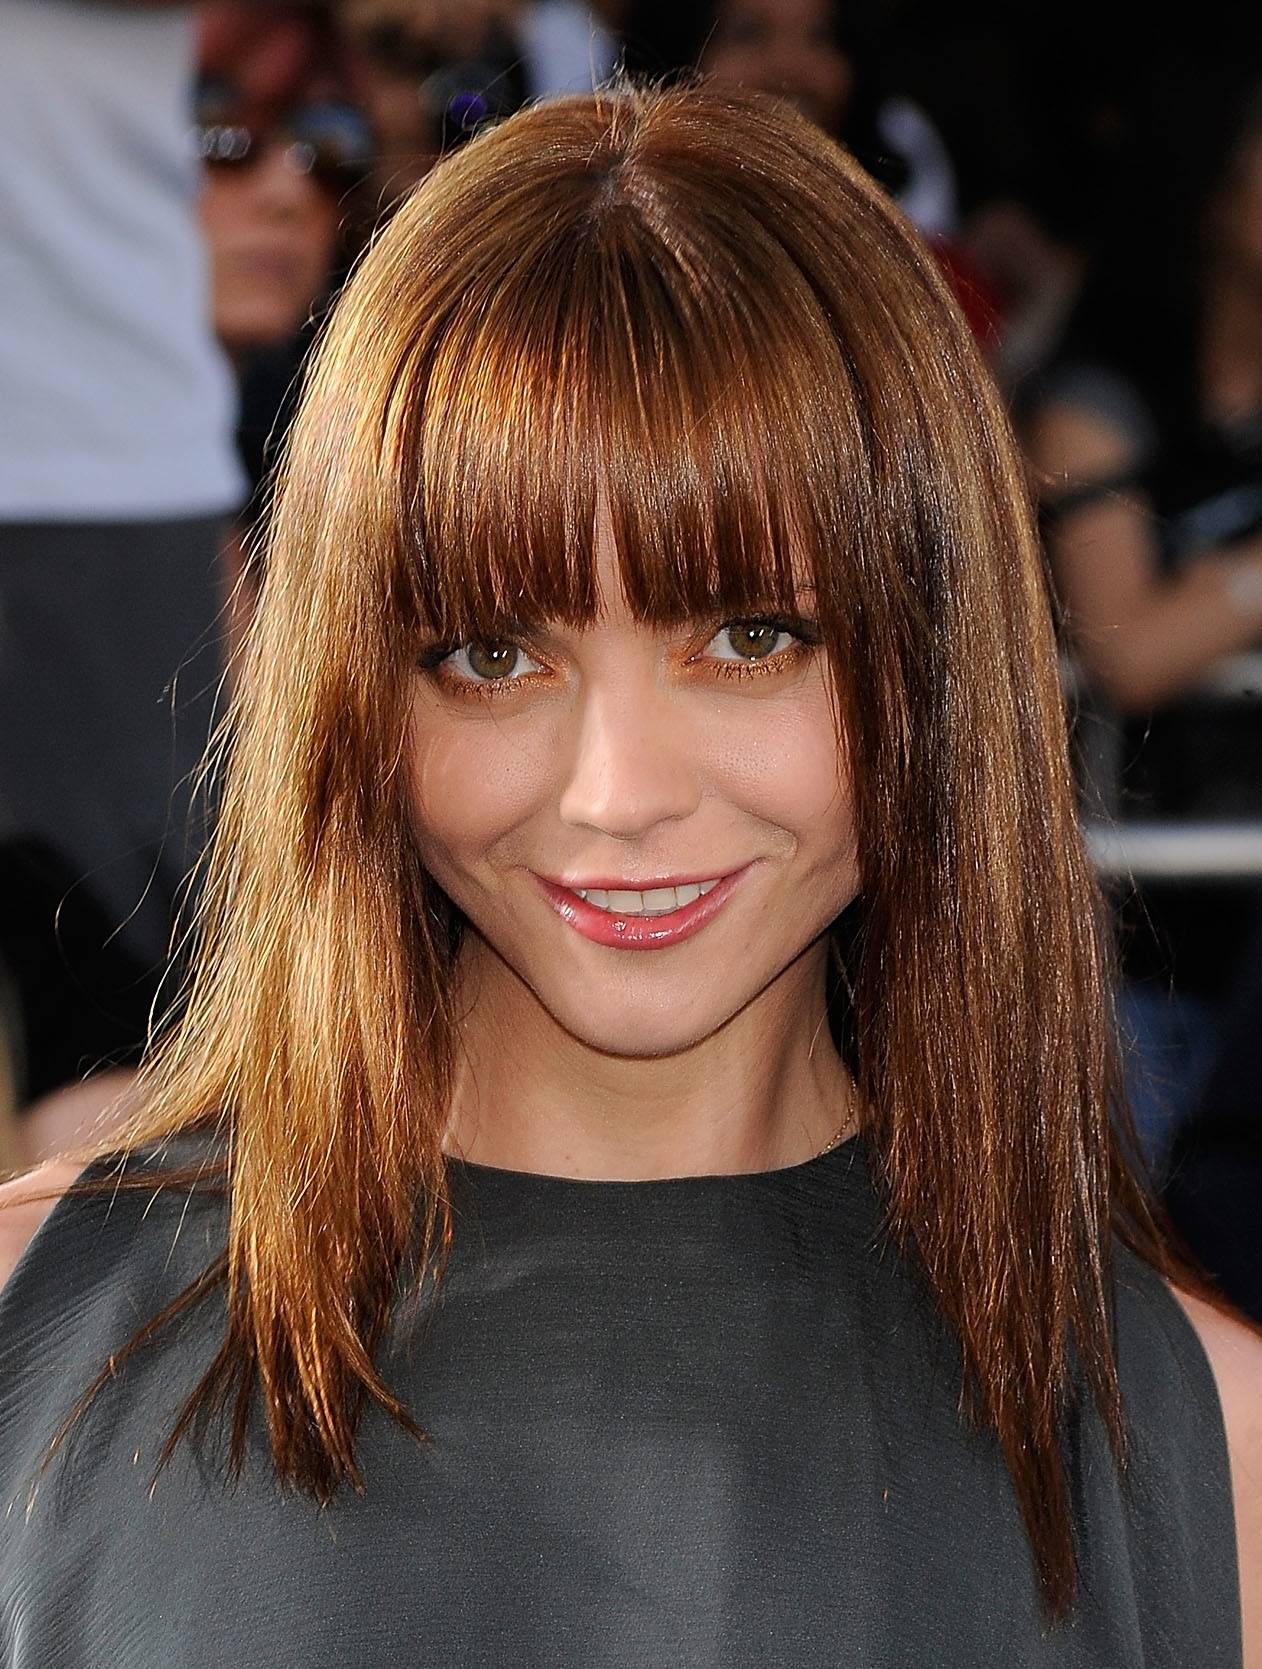 Awesome 25 Long Hairstyles With Bangs Are The Best For Round Faces Short Hairstyles For Black Women Fulllsitofus